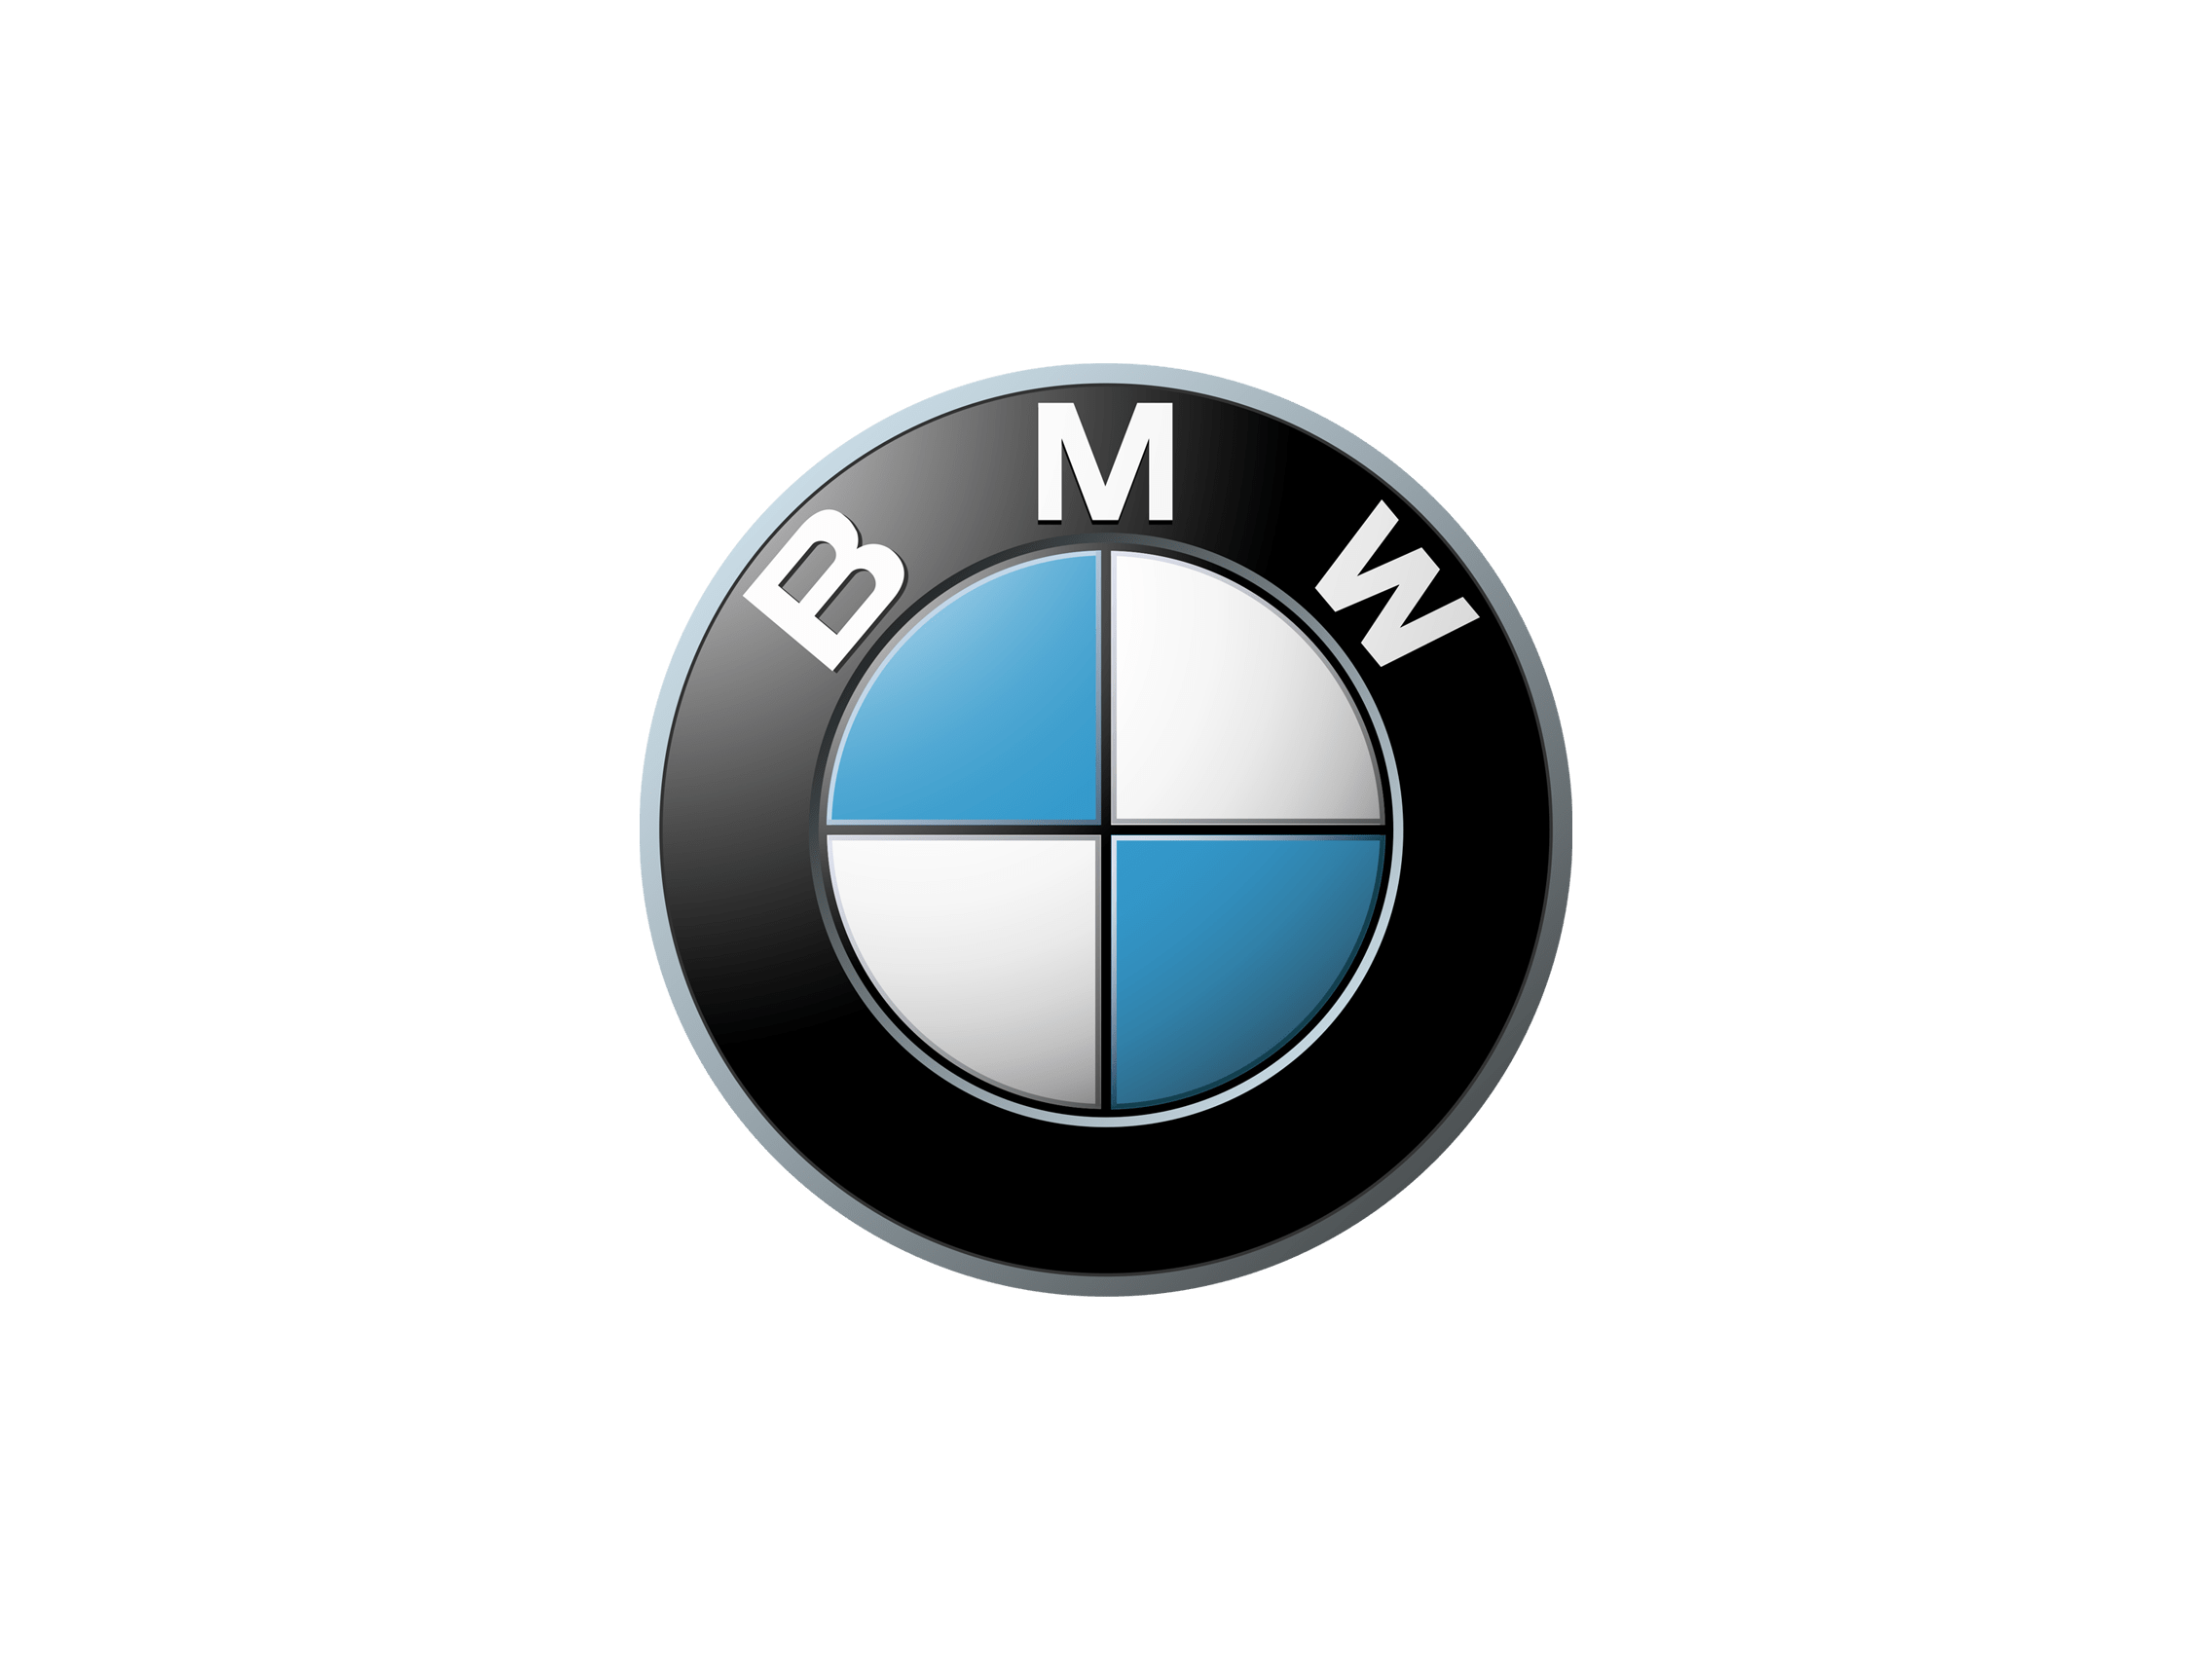 LogoStories Dedicated to BMW's history in aviation, the